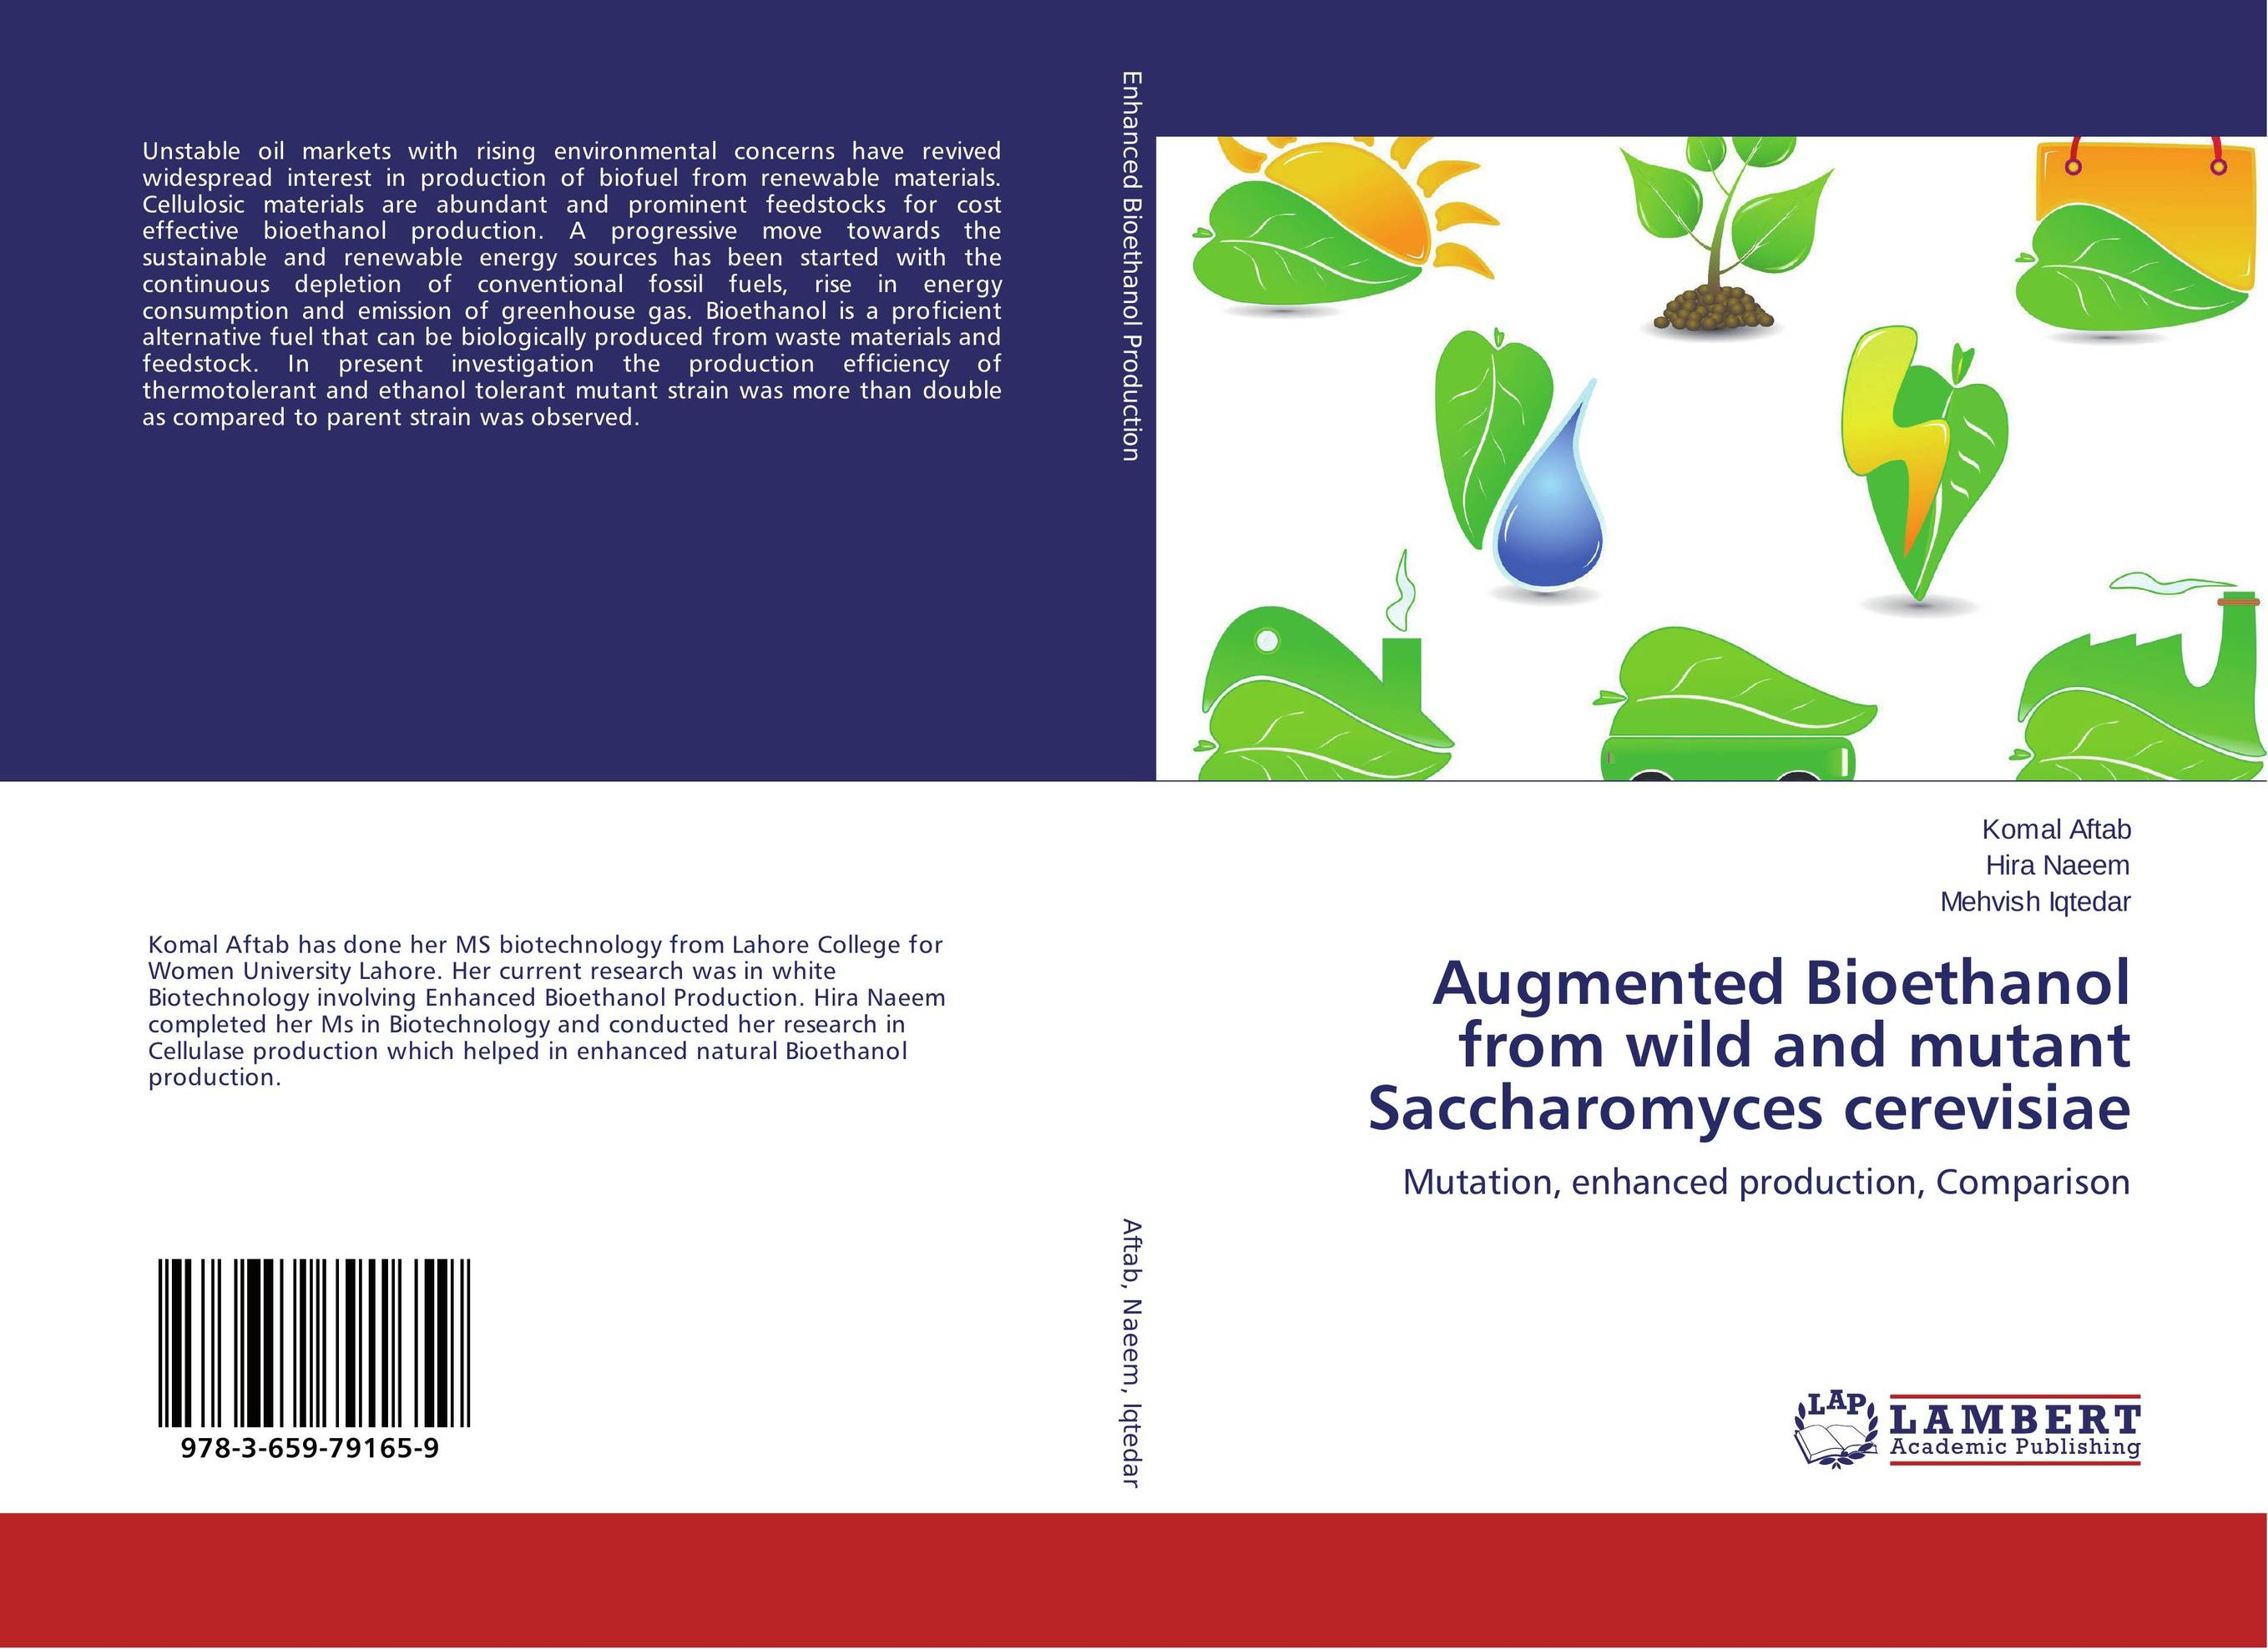 Augmented Bioethanol from wild and mutant Saccharomyces cerevisiae lei wang bioethanol from waste papers